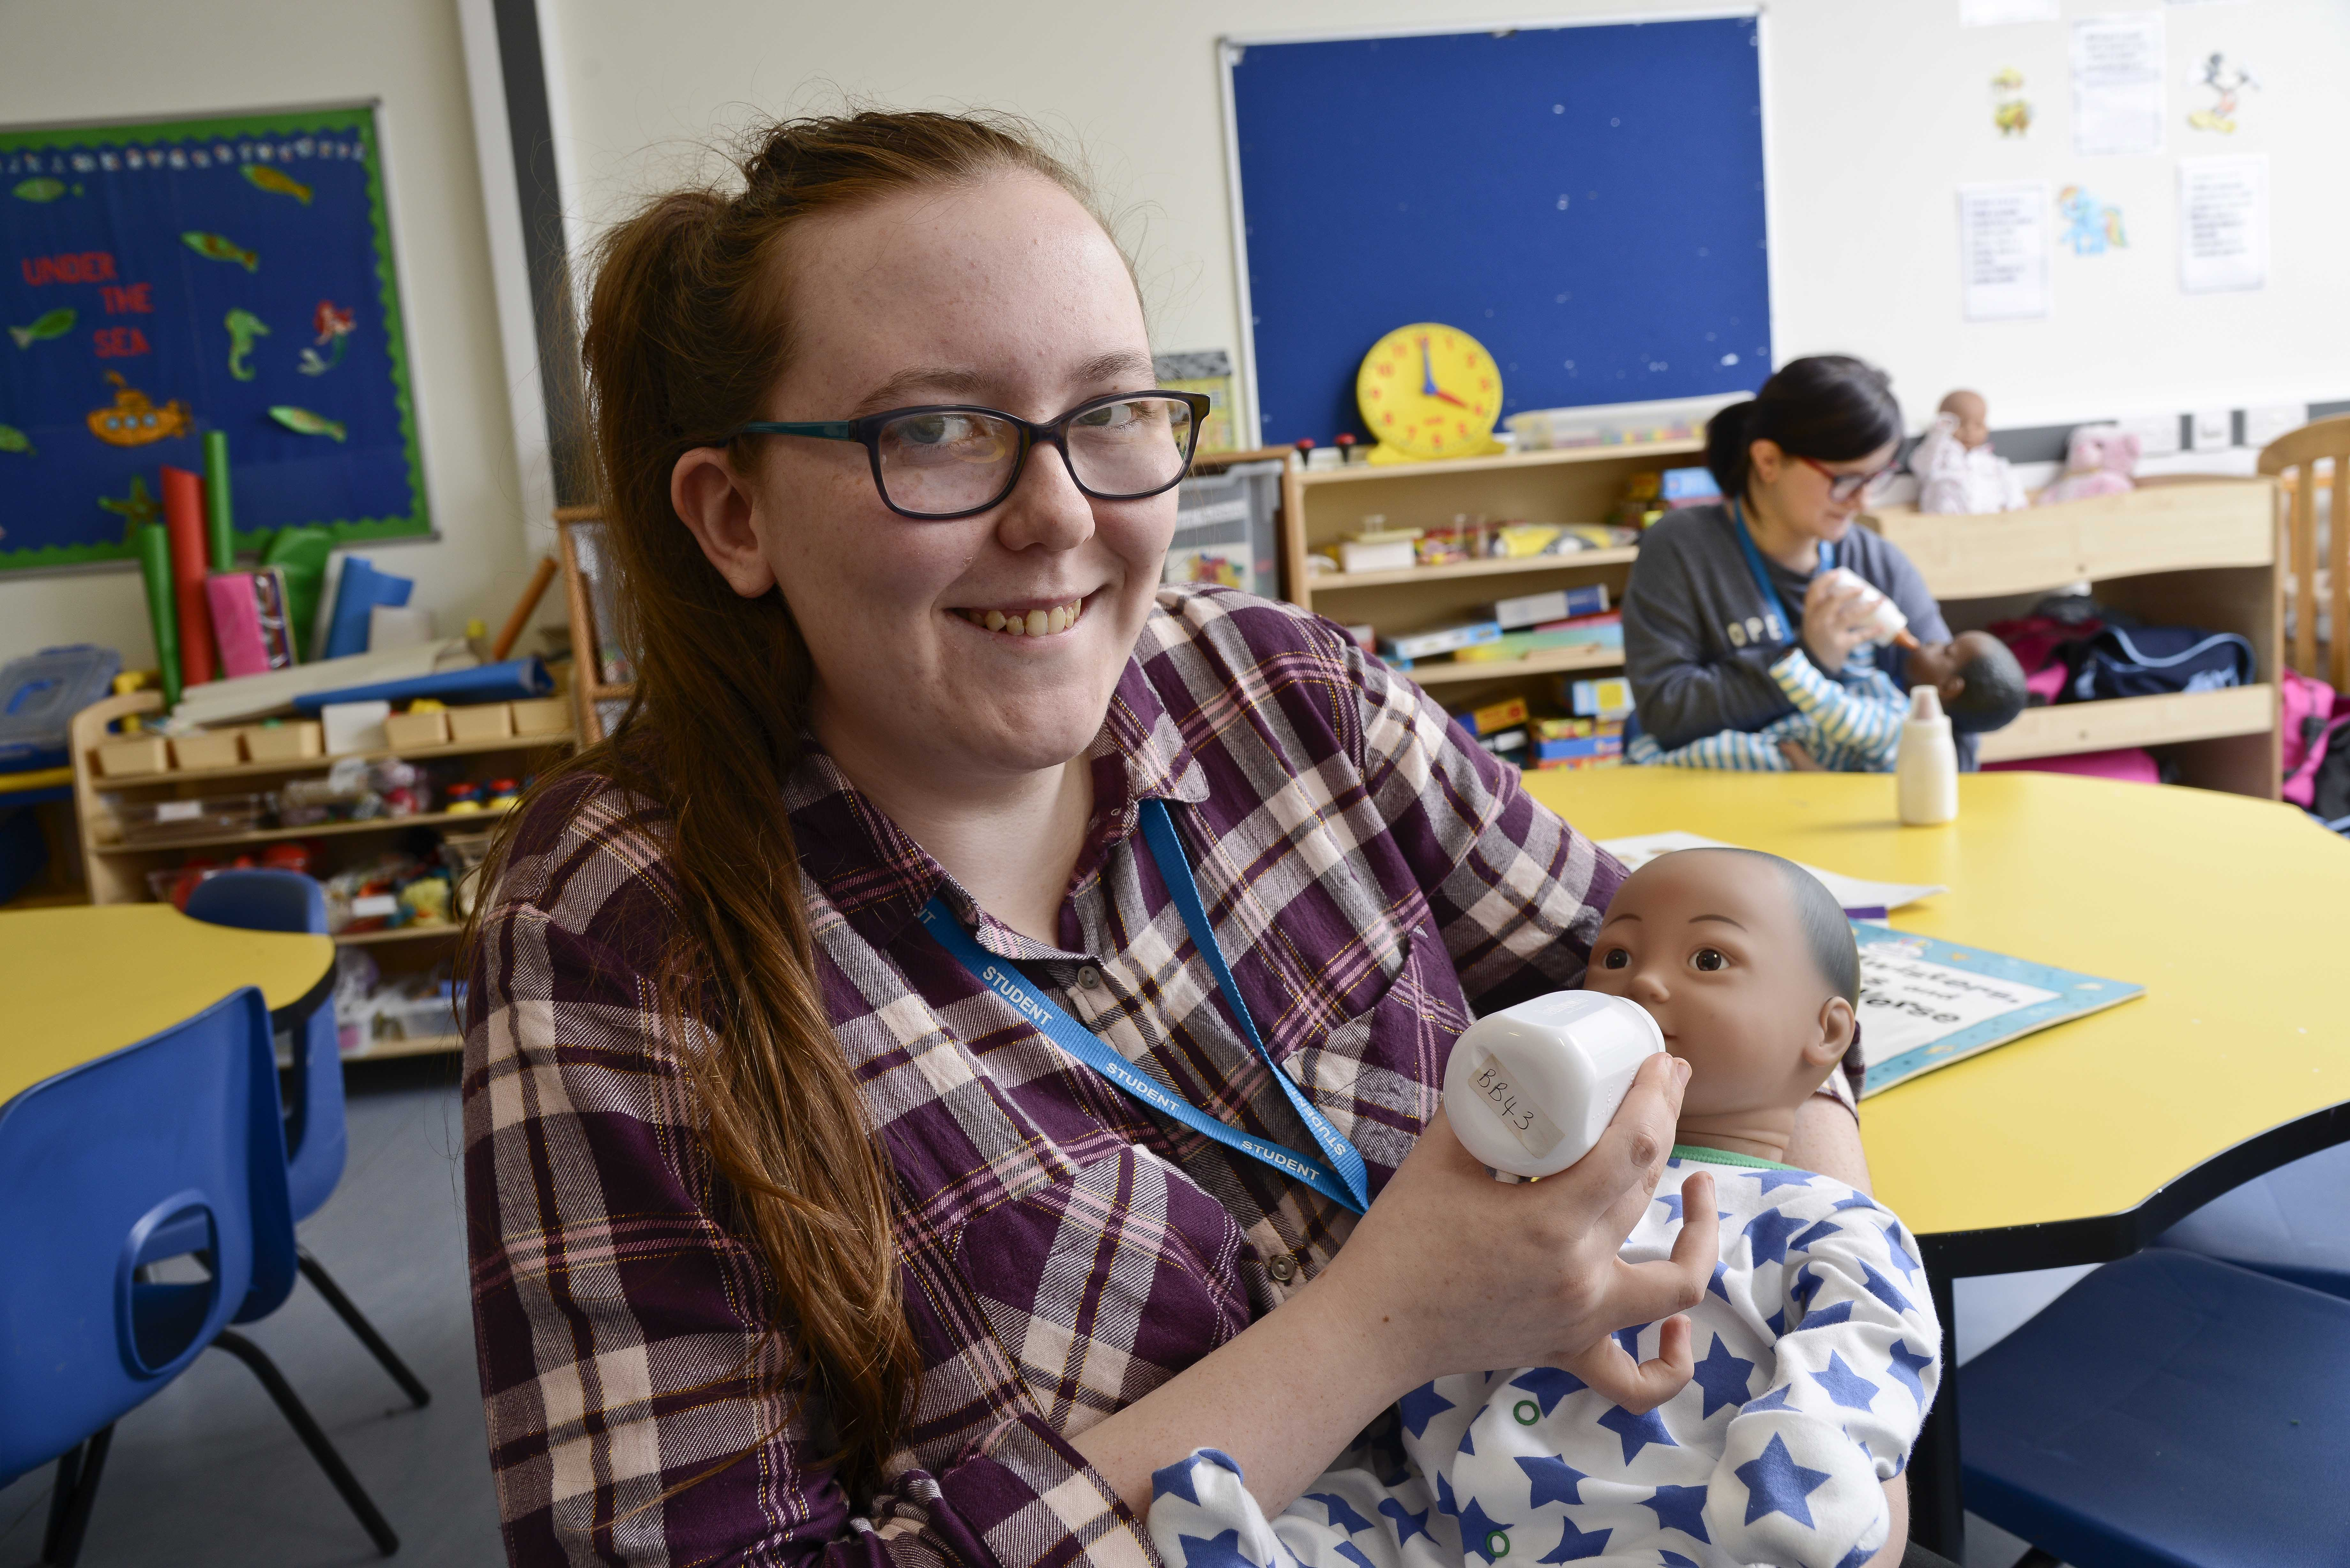 Early Years Workforce (Early Years Educator) CACHE Level 3 Diploma